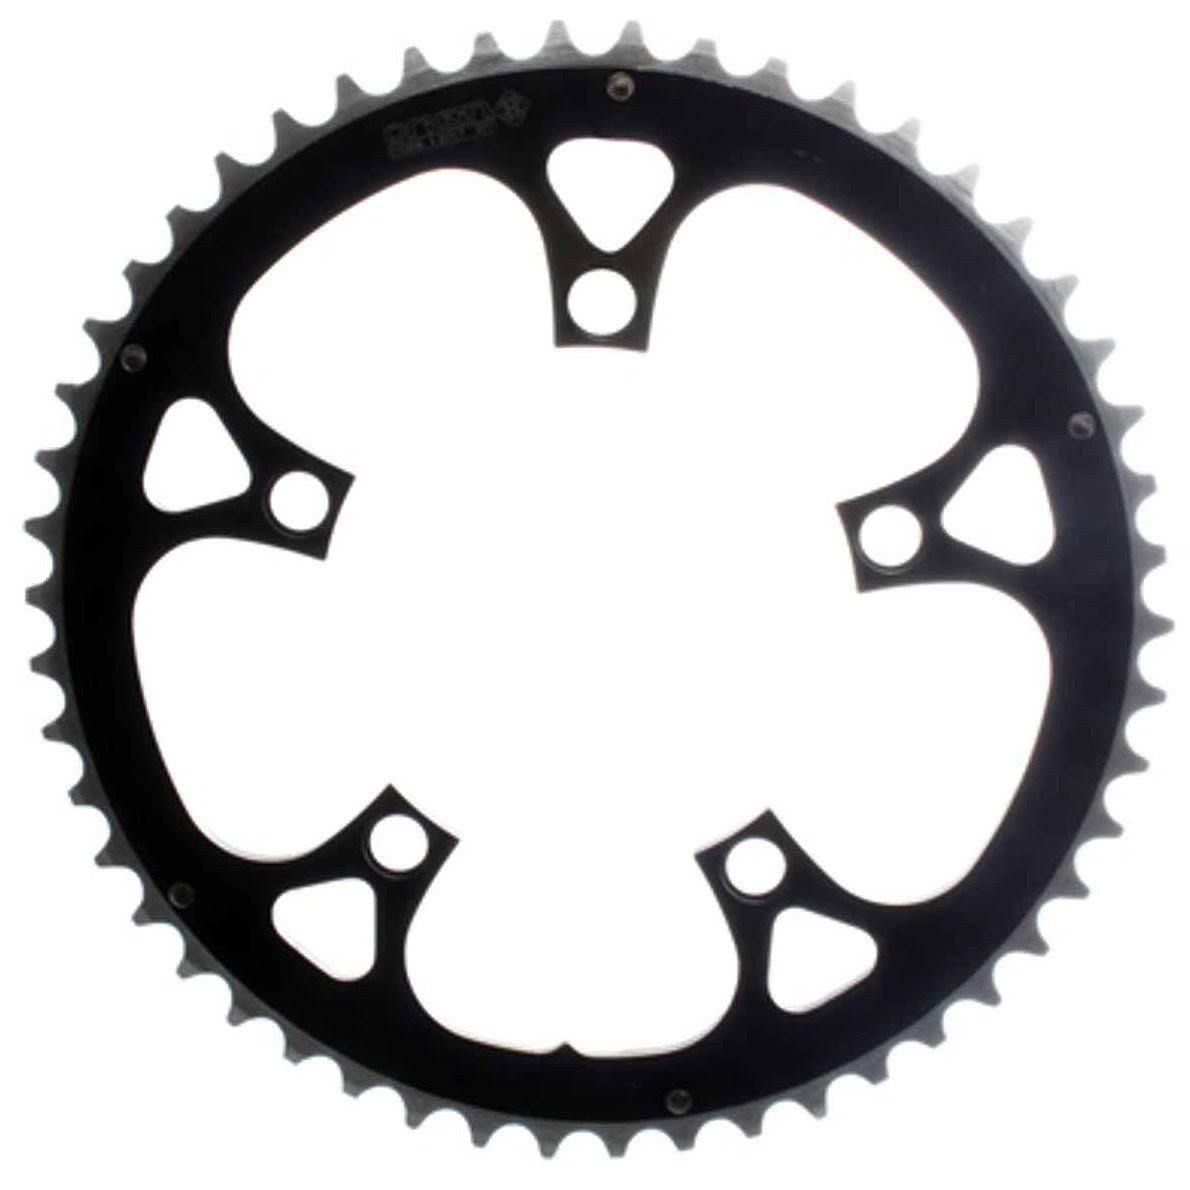 Origin8 Alloy Ramped Chainrings - Black/Silver, 110mm, 50T